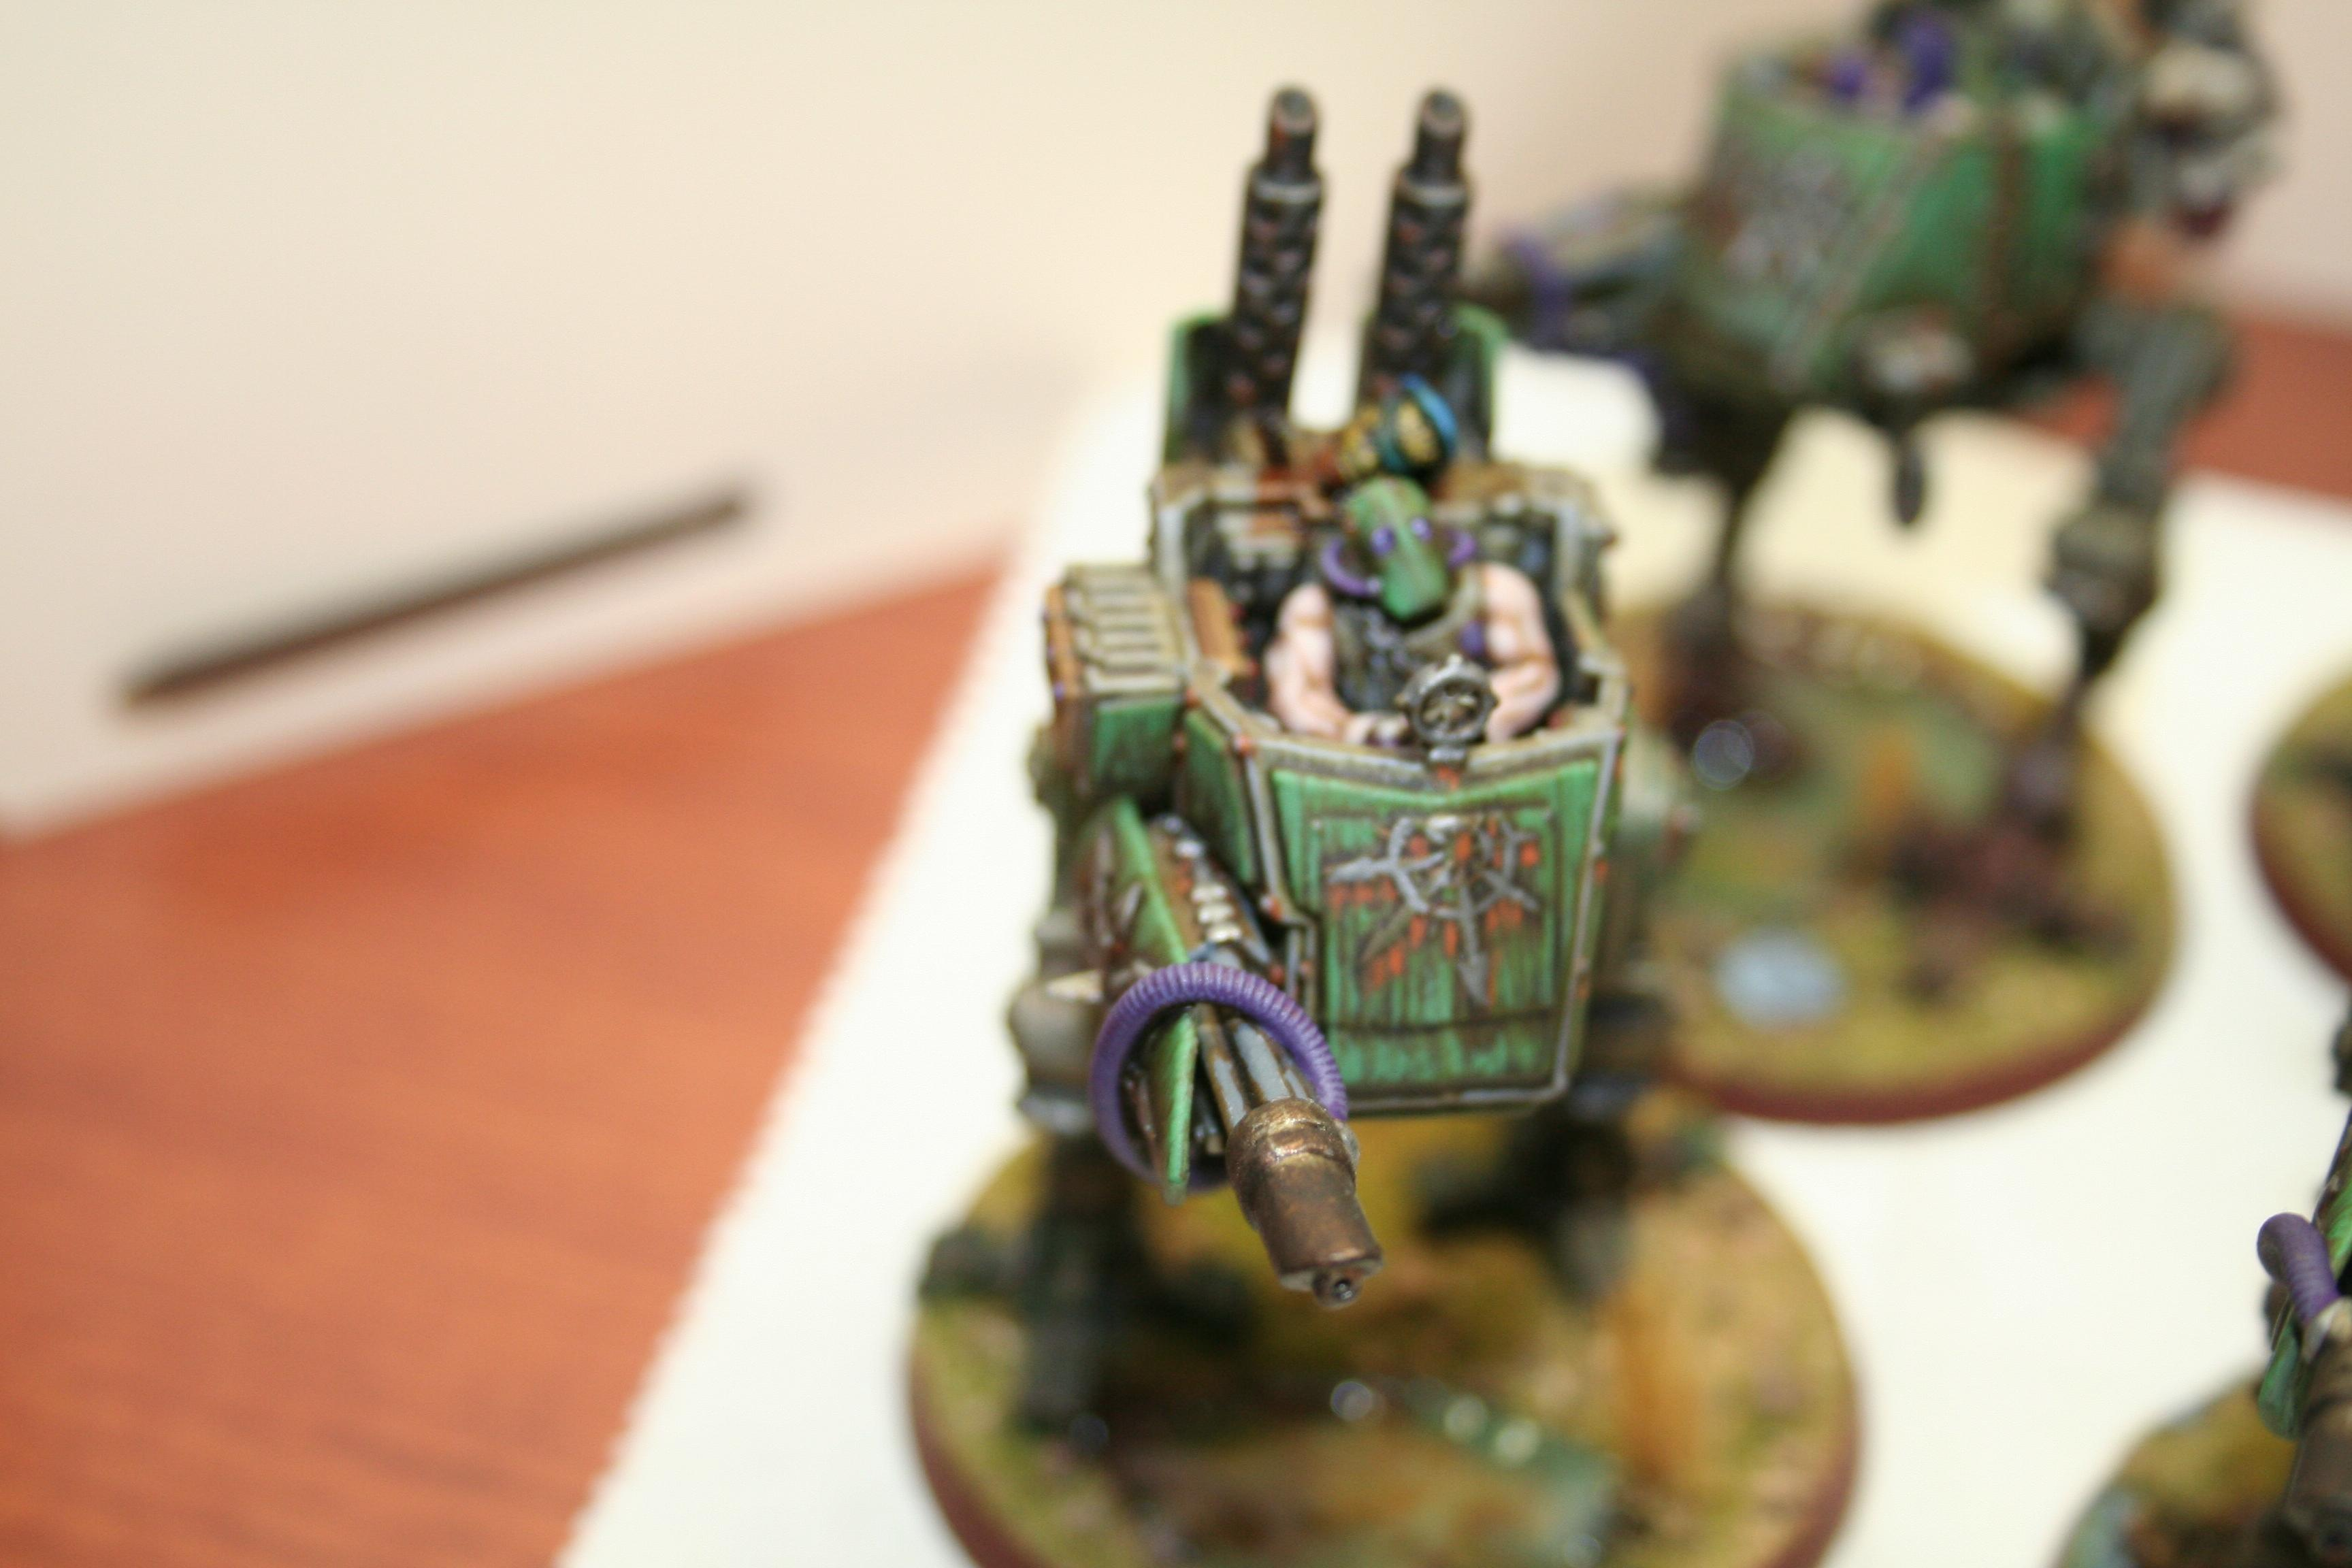 Chaos, Conversion, Imperial Guard, Nurgle, Sentinel, Traitor, Warhammer 40,000